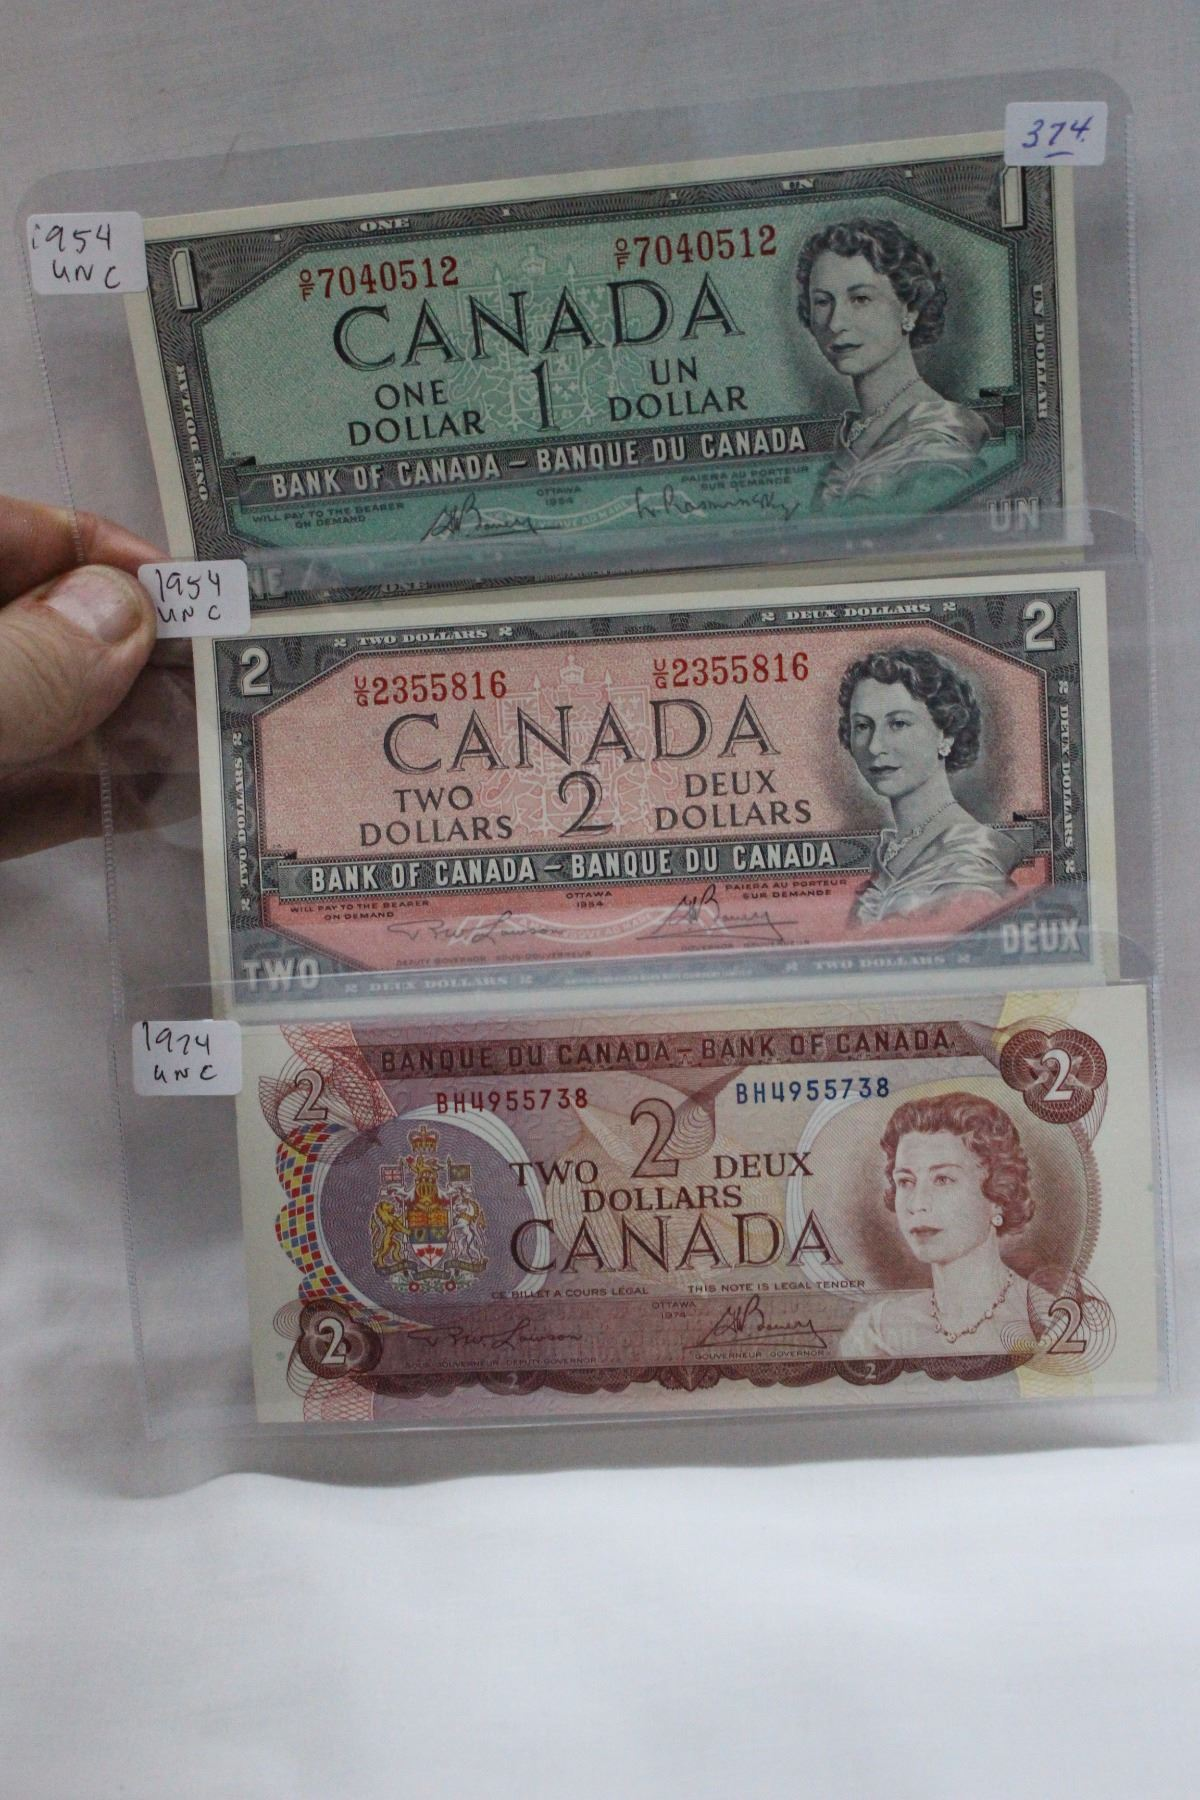 Canada 1954 One and Two Dollar Bills - Modified & 1974 Two Dollar Bill -  all 3 bills are Uncirc